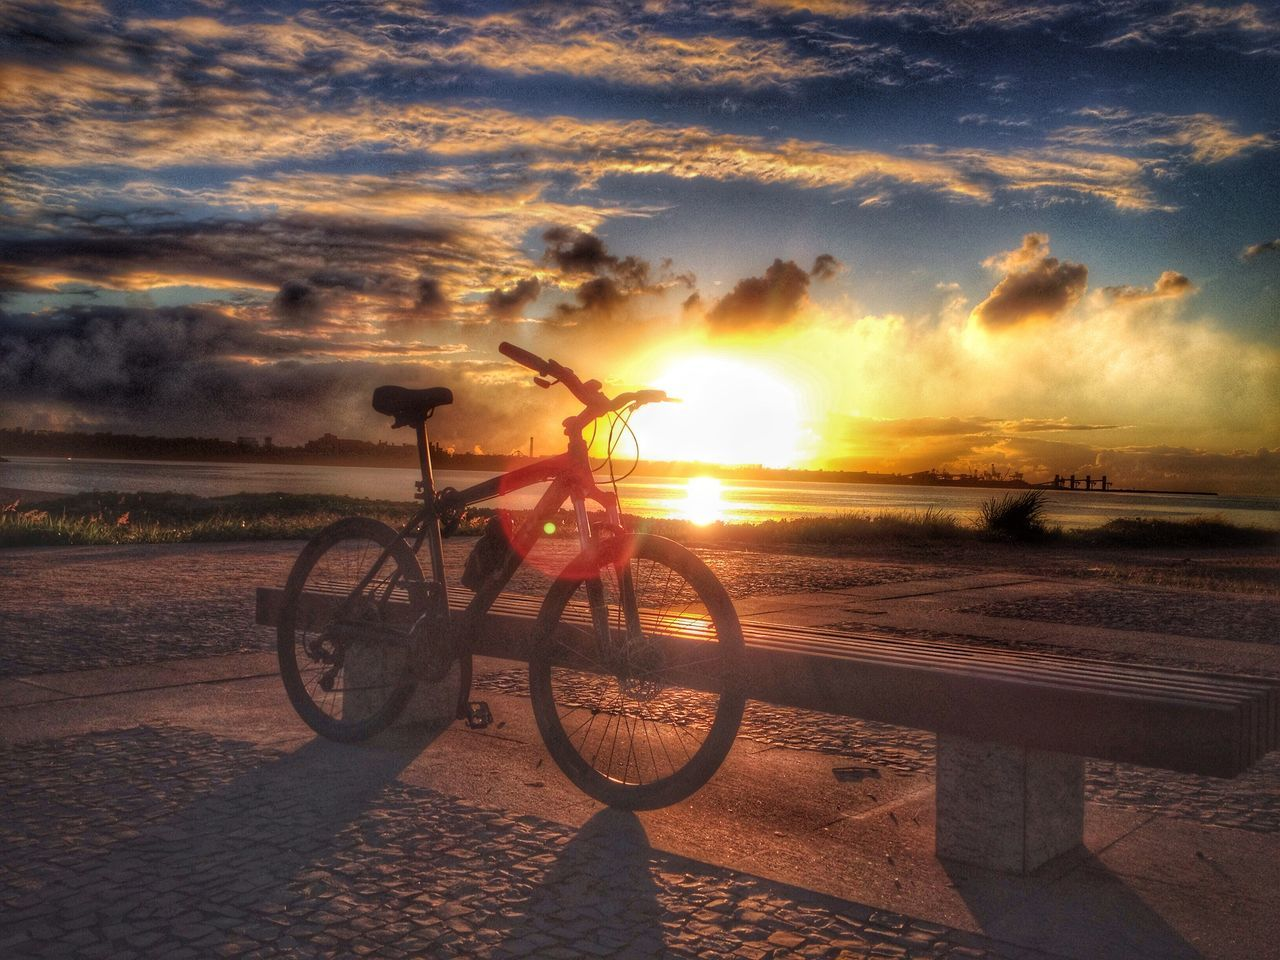 sunset, sky, cloud - sky, nature, beach, sea, outdoors, bicycle, sun, silhouette, sunlight, transportation, beauty in nature, sand, land vehicle, water, scenics, real people, one person, day, people